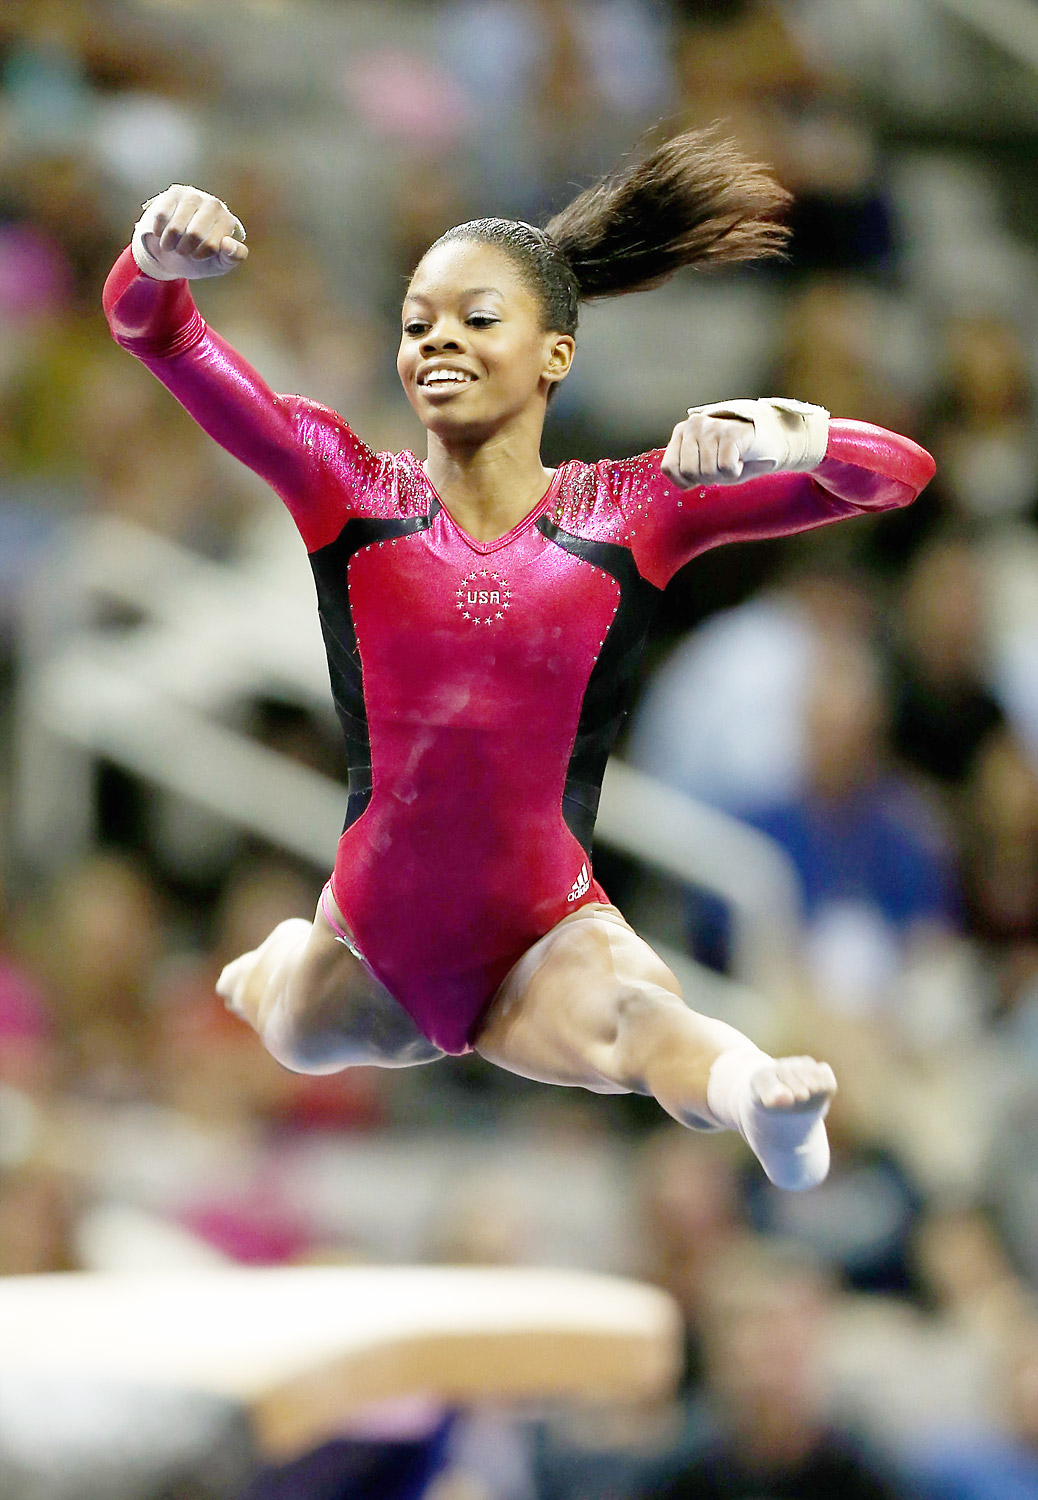 about tumbling gabby douglas quotes quotesgram